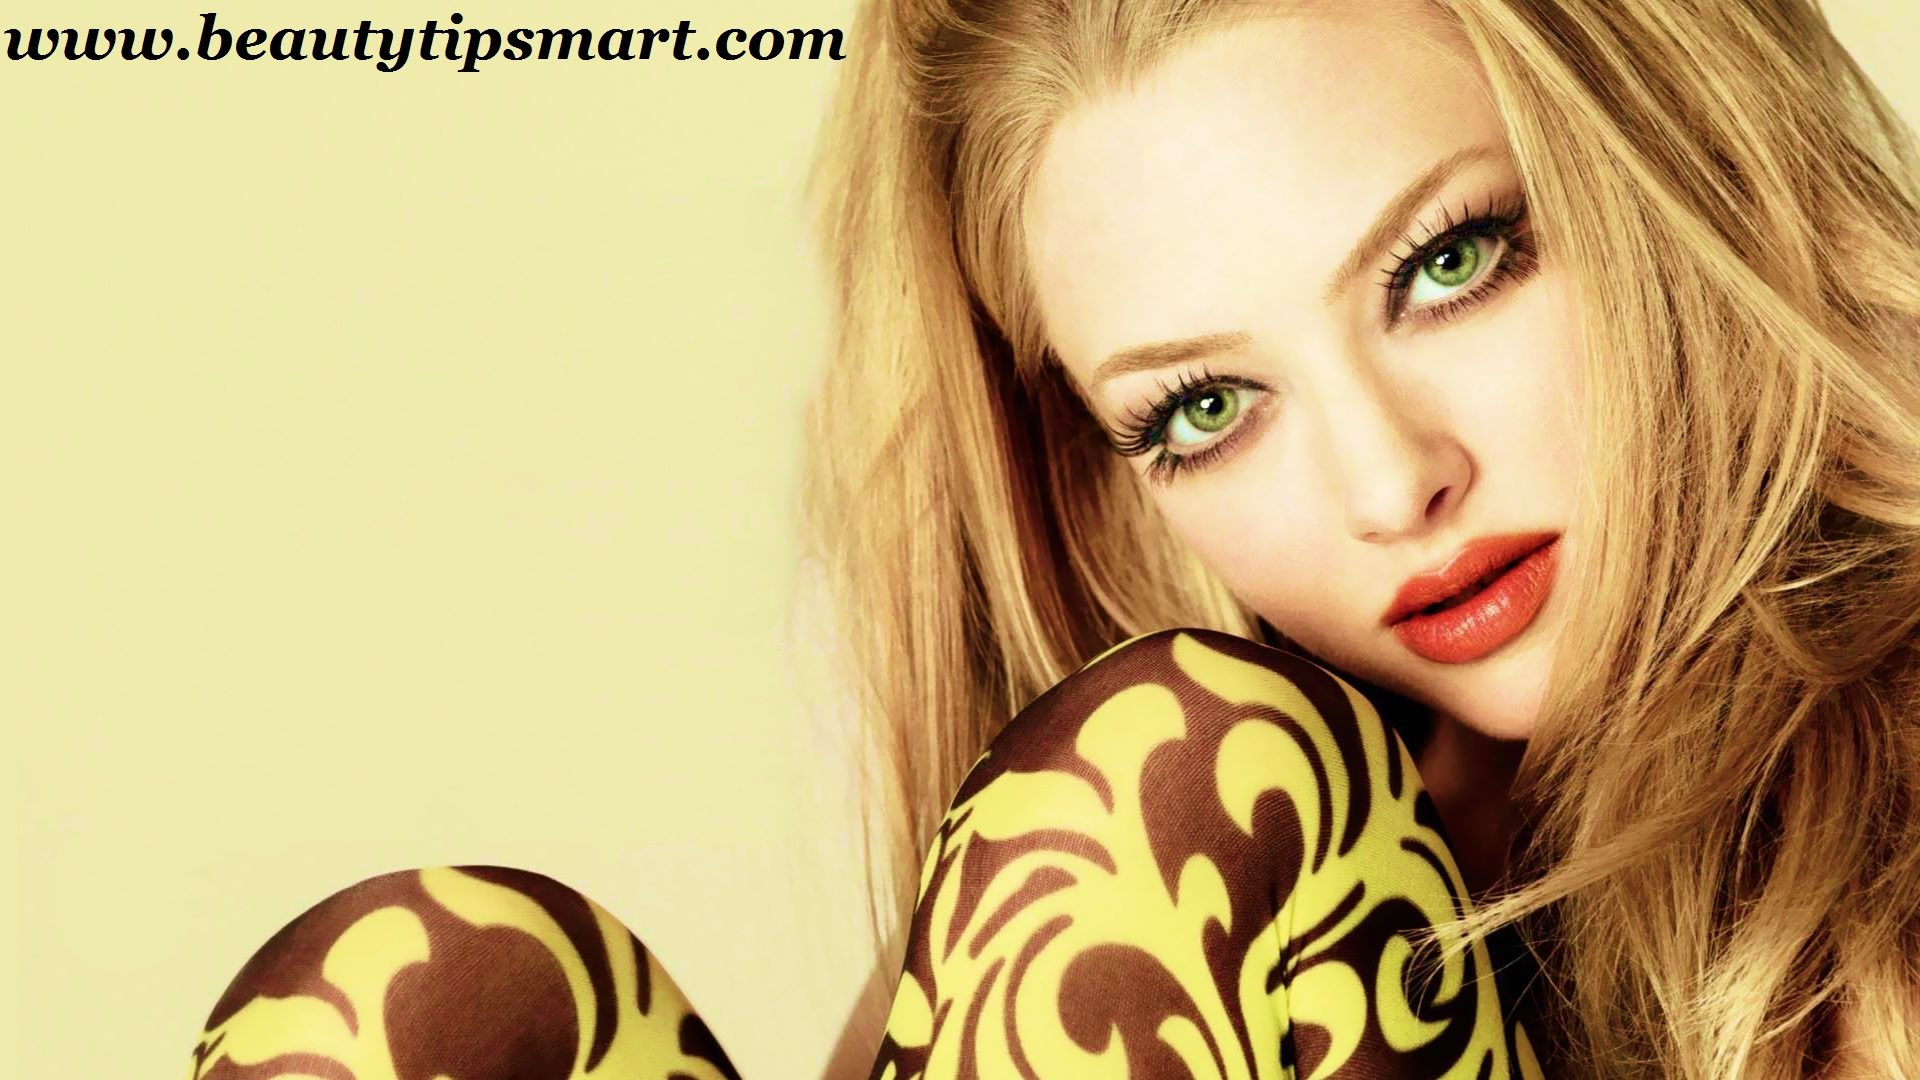 top-10-most-beautiful-women-in-the-world-2013-2-8136661